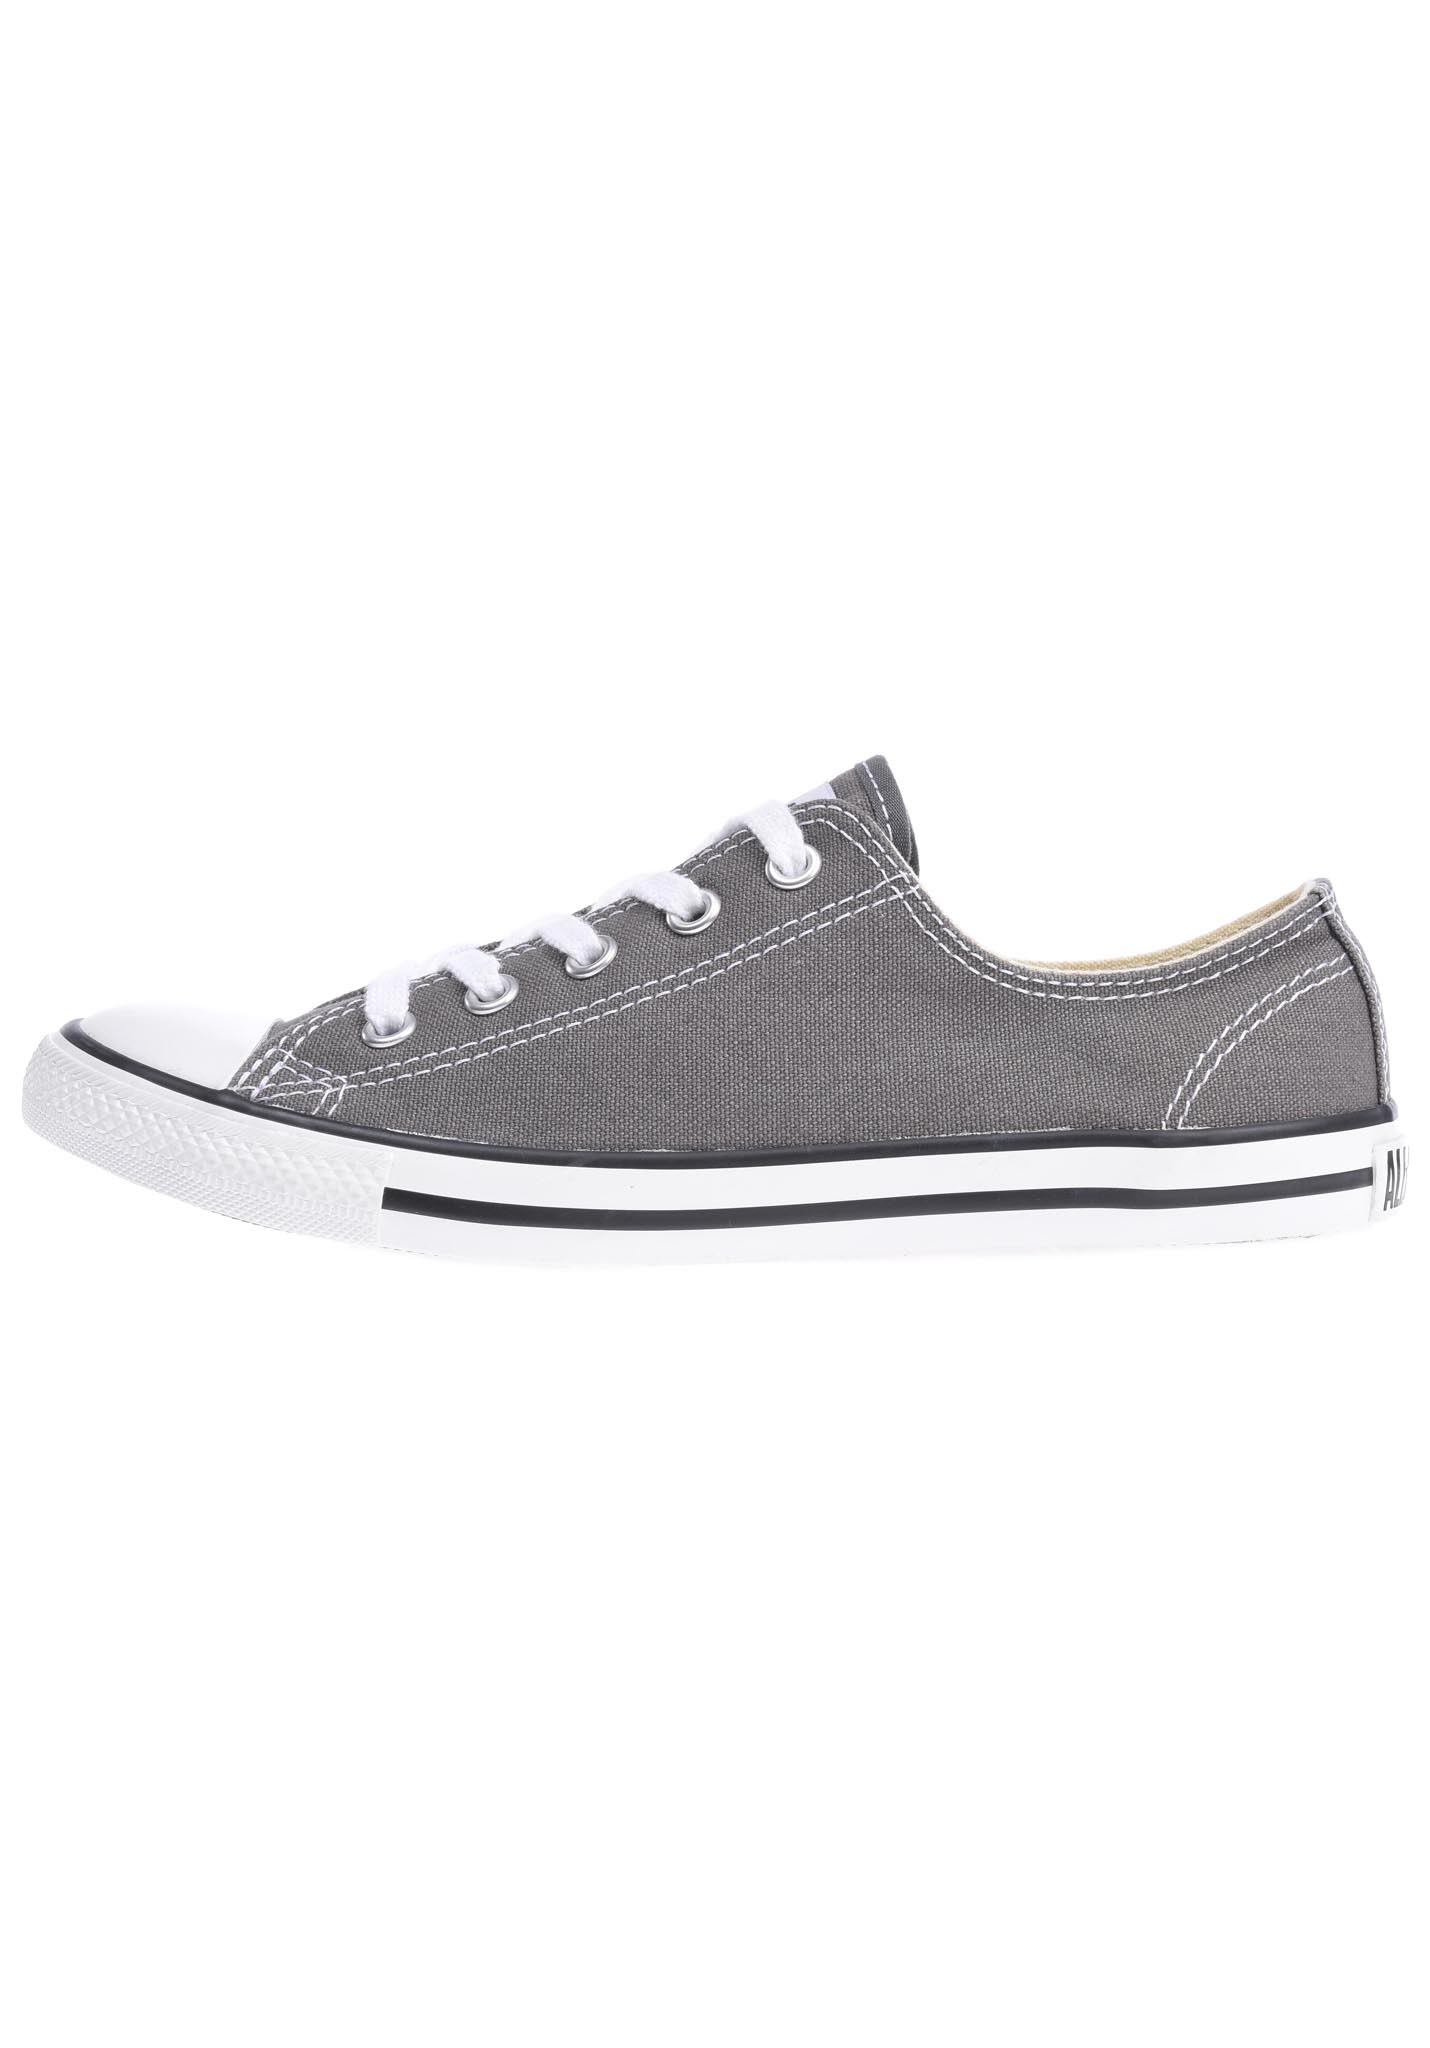 Chuck All Dainty Pour Ox Star Baskets Femme Gris Taylor Converse xeWCQrBdo